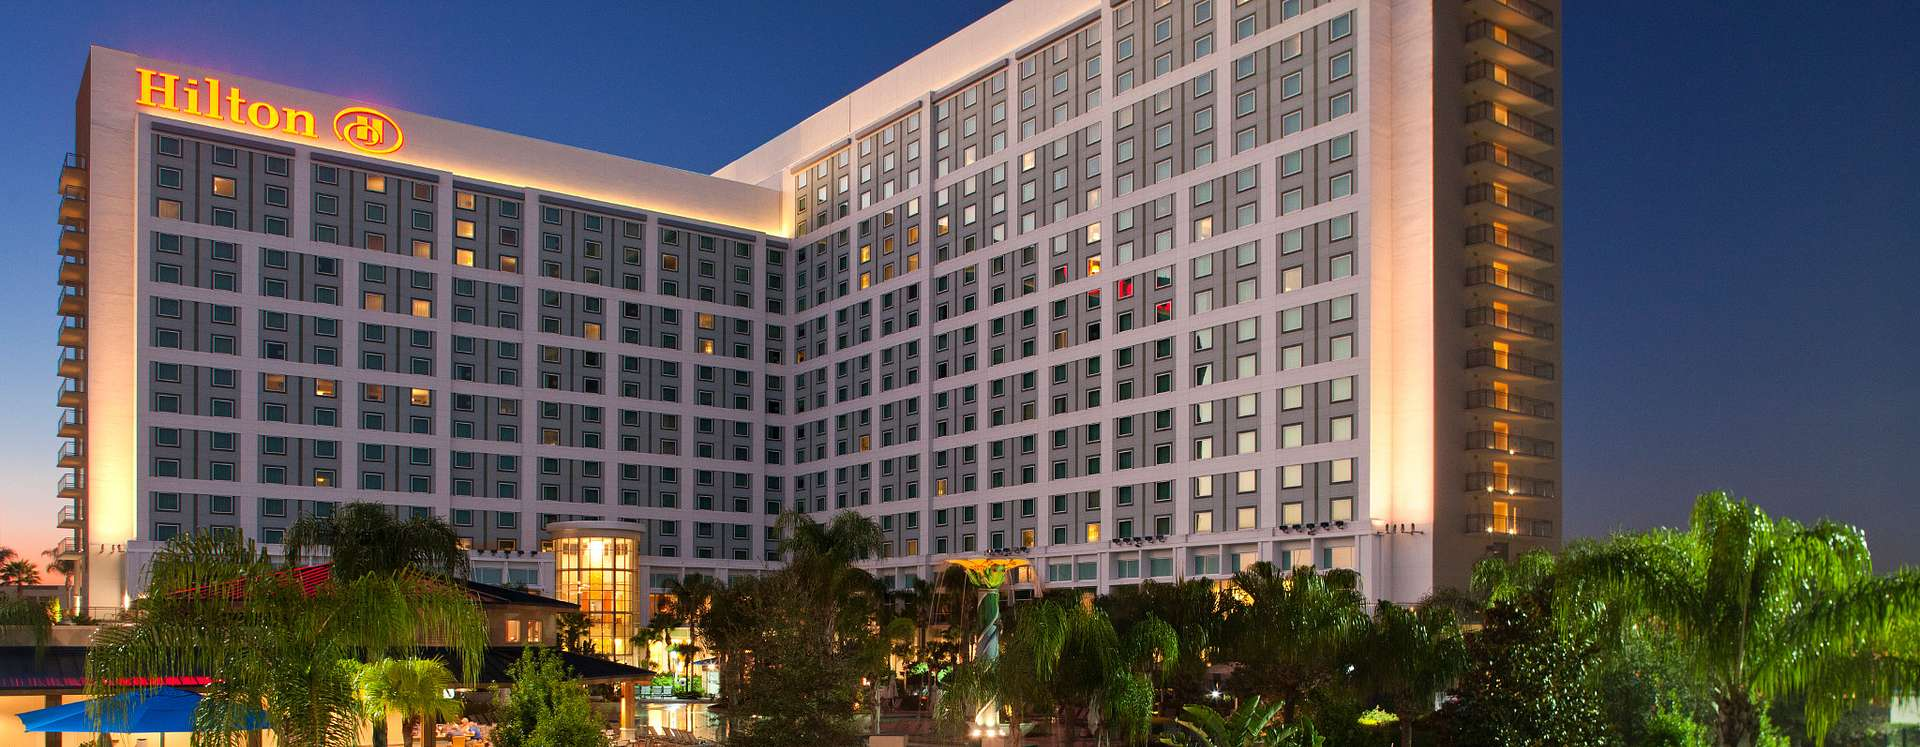 Hilton Orlando hotel exterior at night with the swimming pool in the foreground